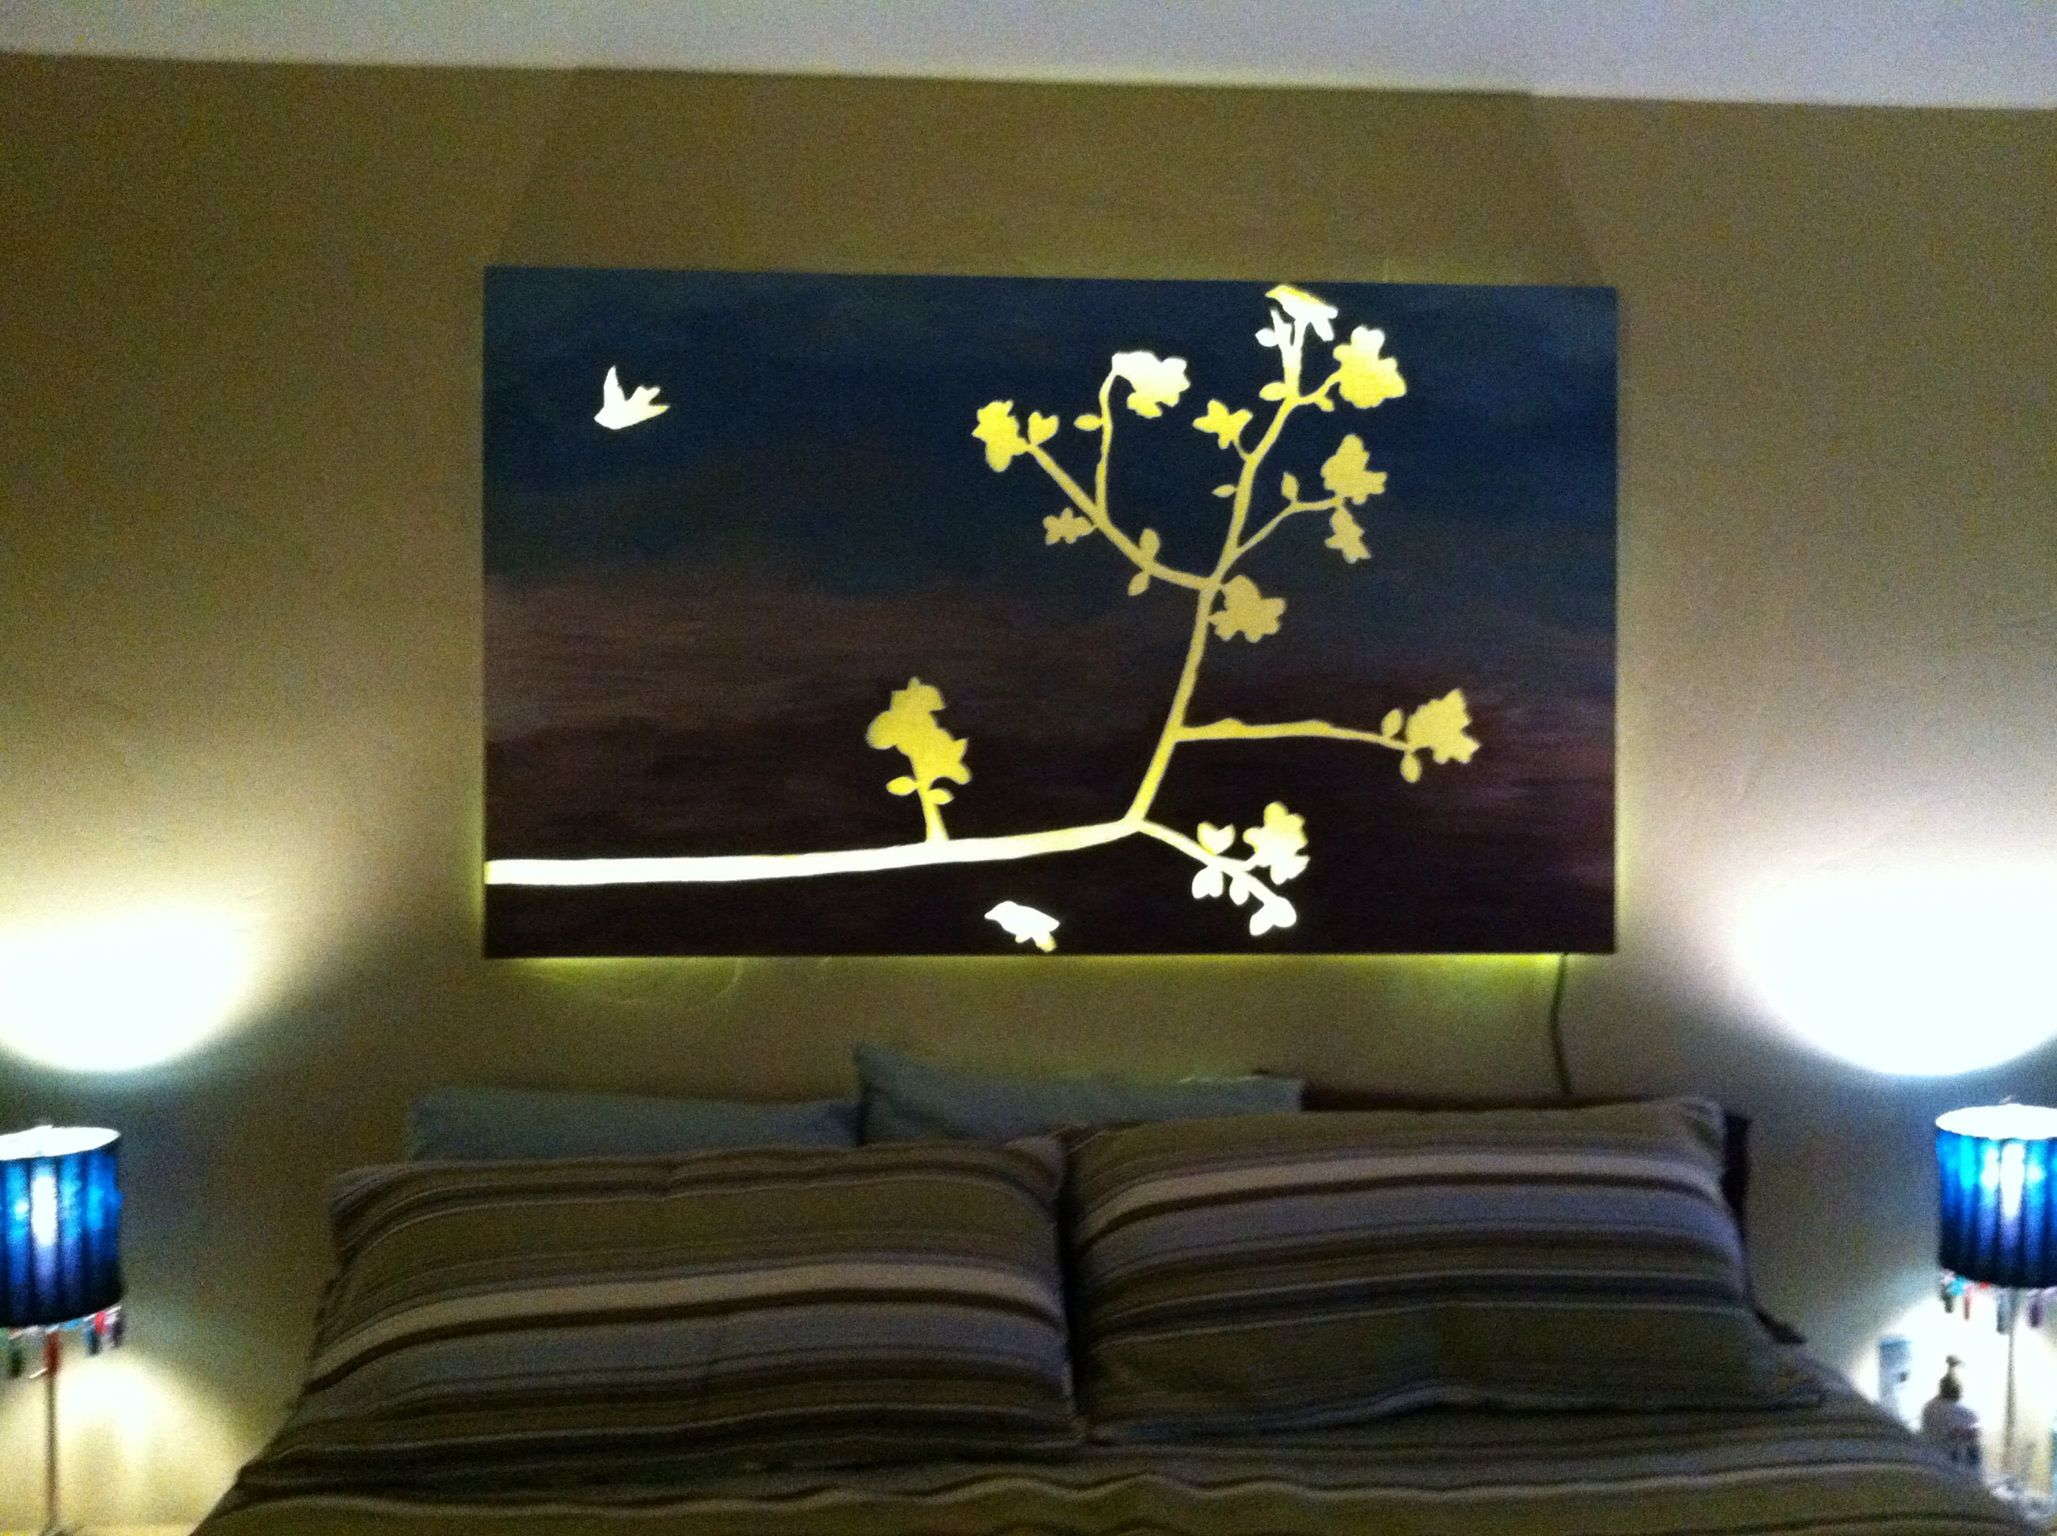 i did it painted canvas over stickers with led lights behind it rh pinterest com diamond painting with led lights diamond painting with led lights